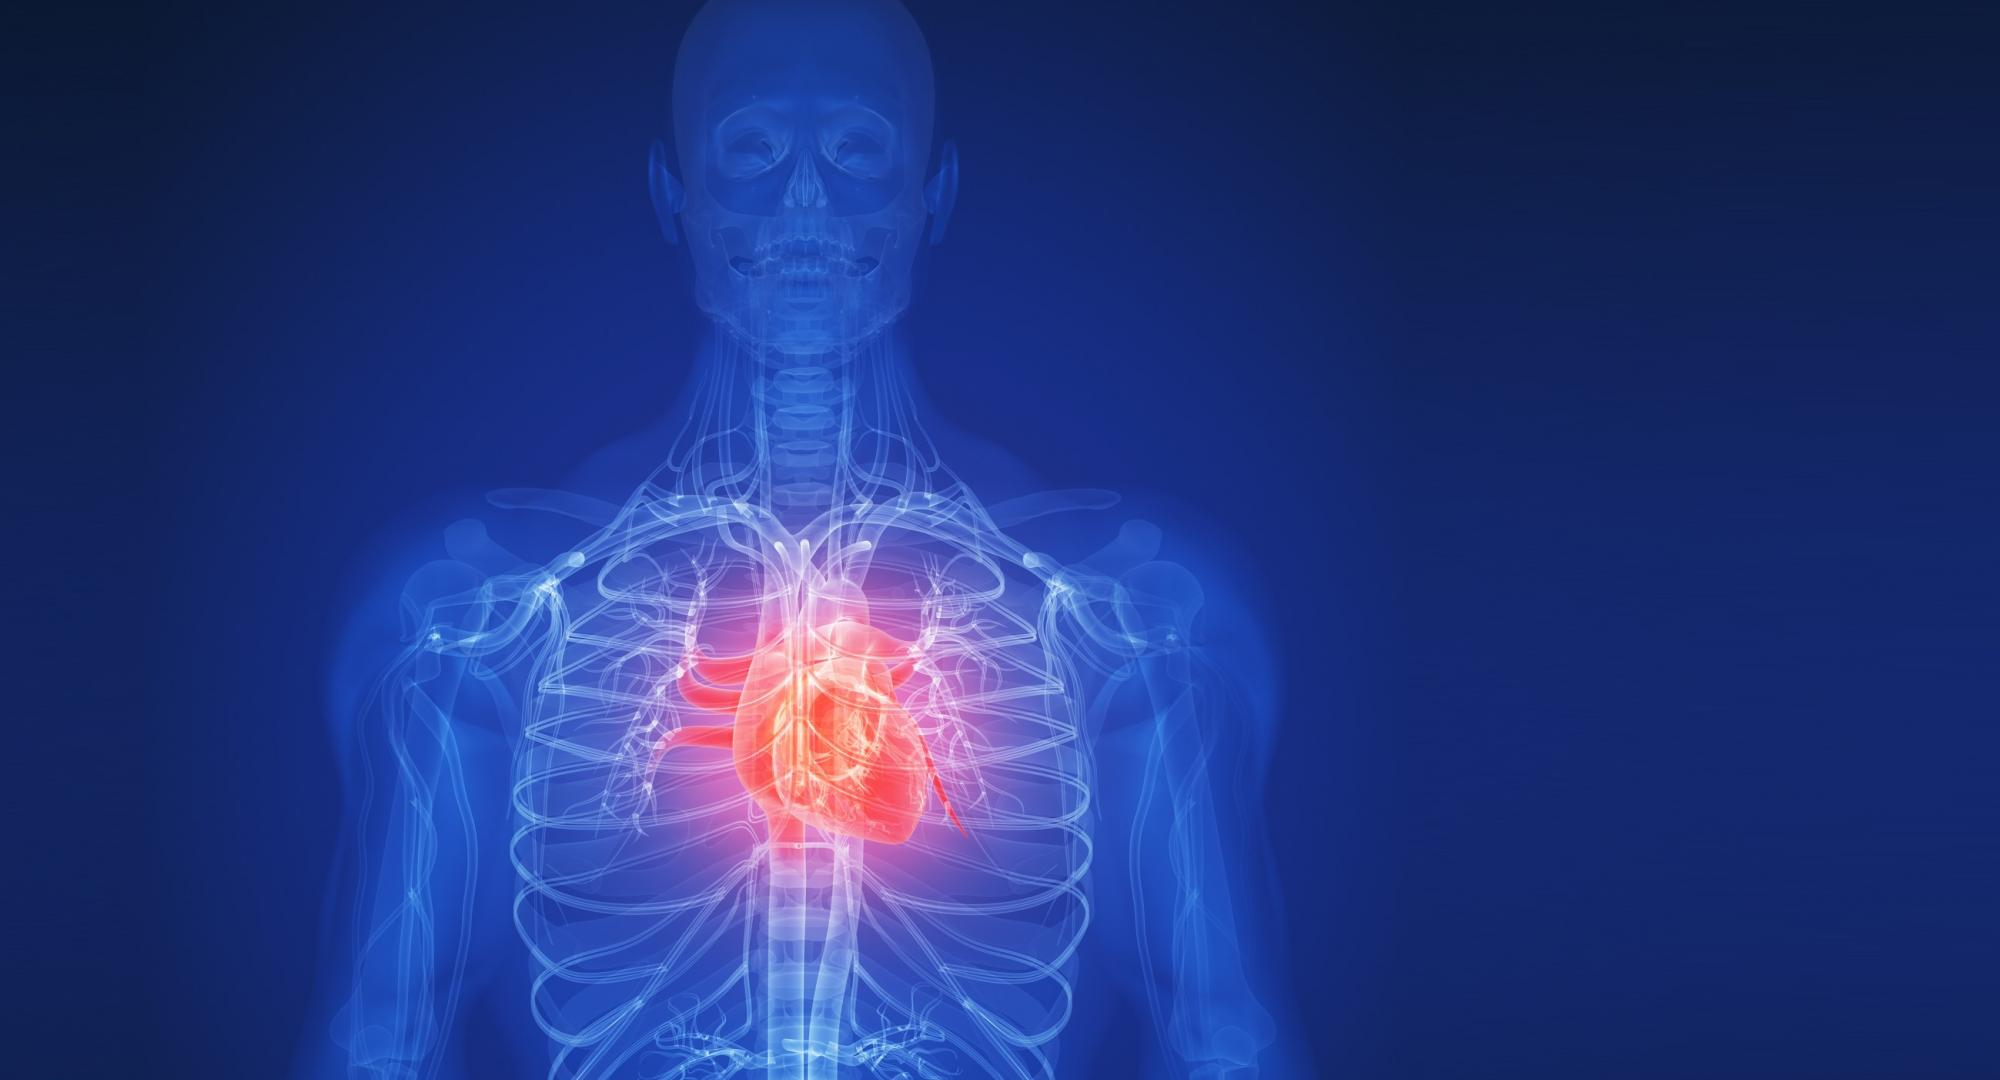 Wireframe illustration of the human body with the heart highlighted